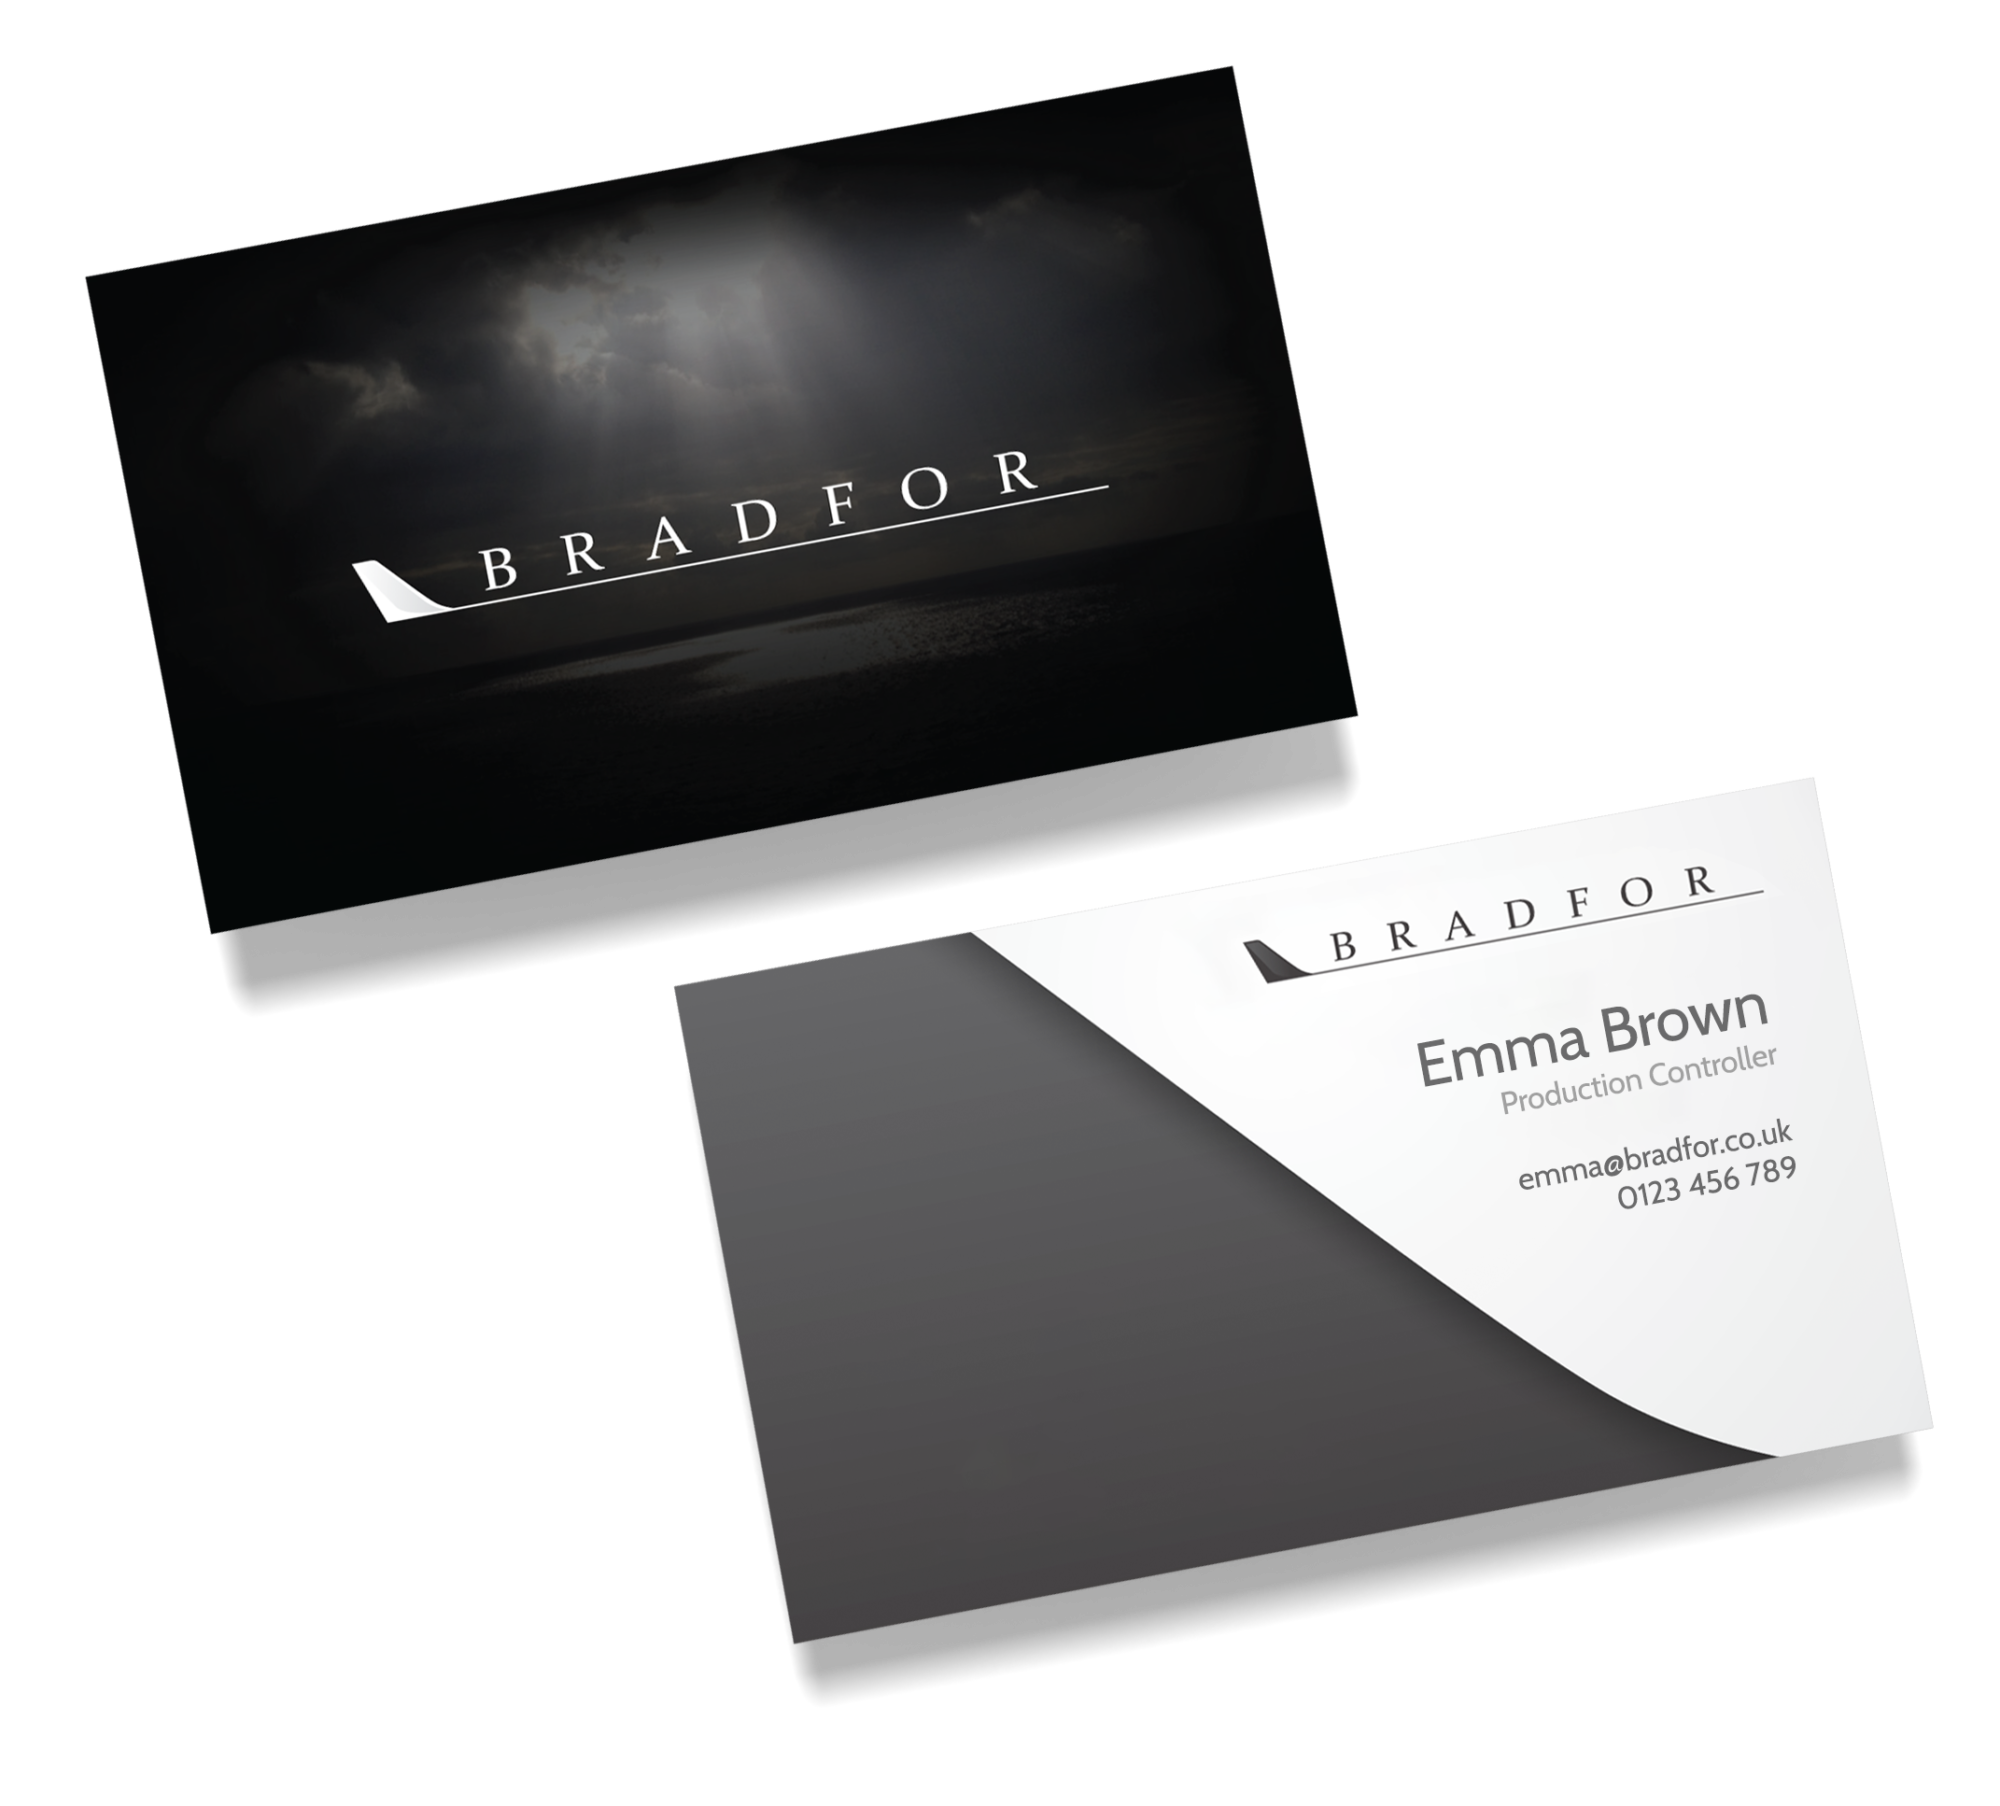 A front and back of the Bradfor business cards.